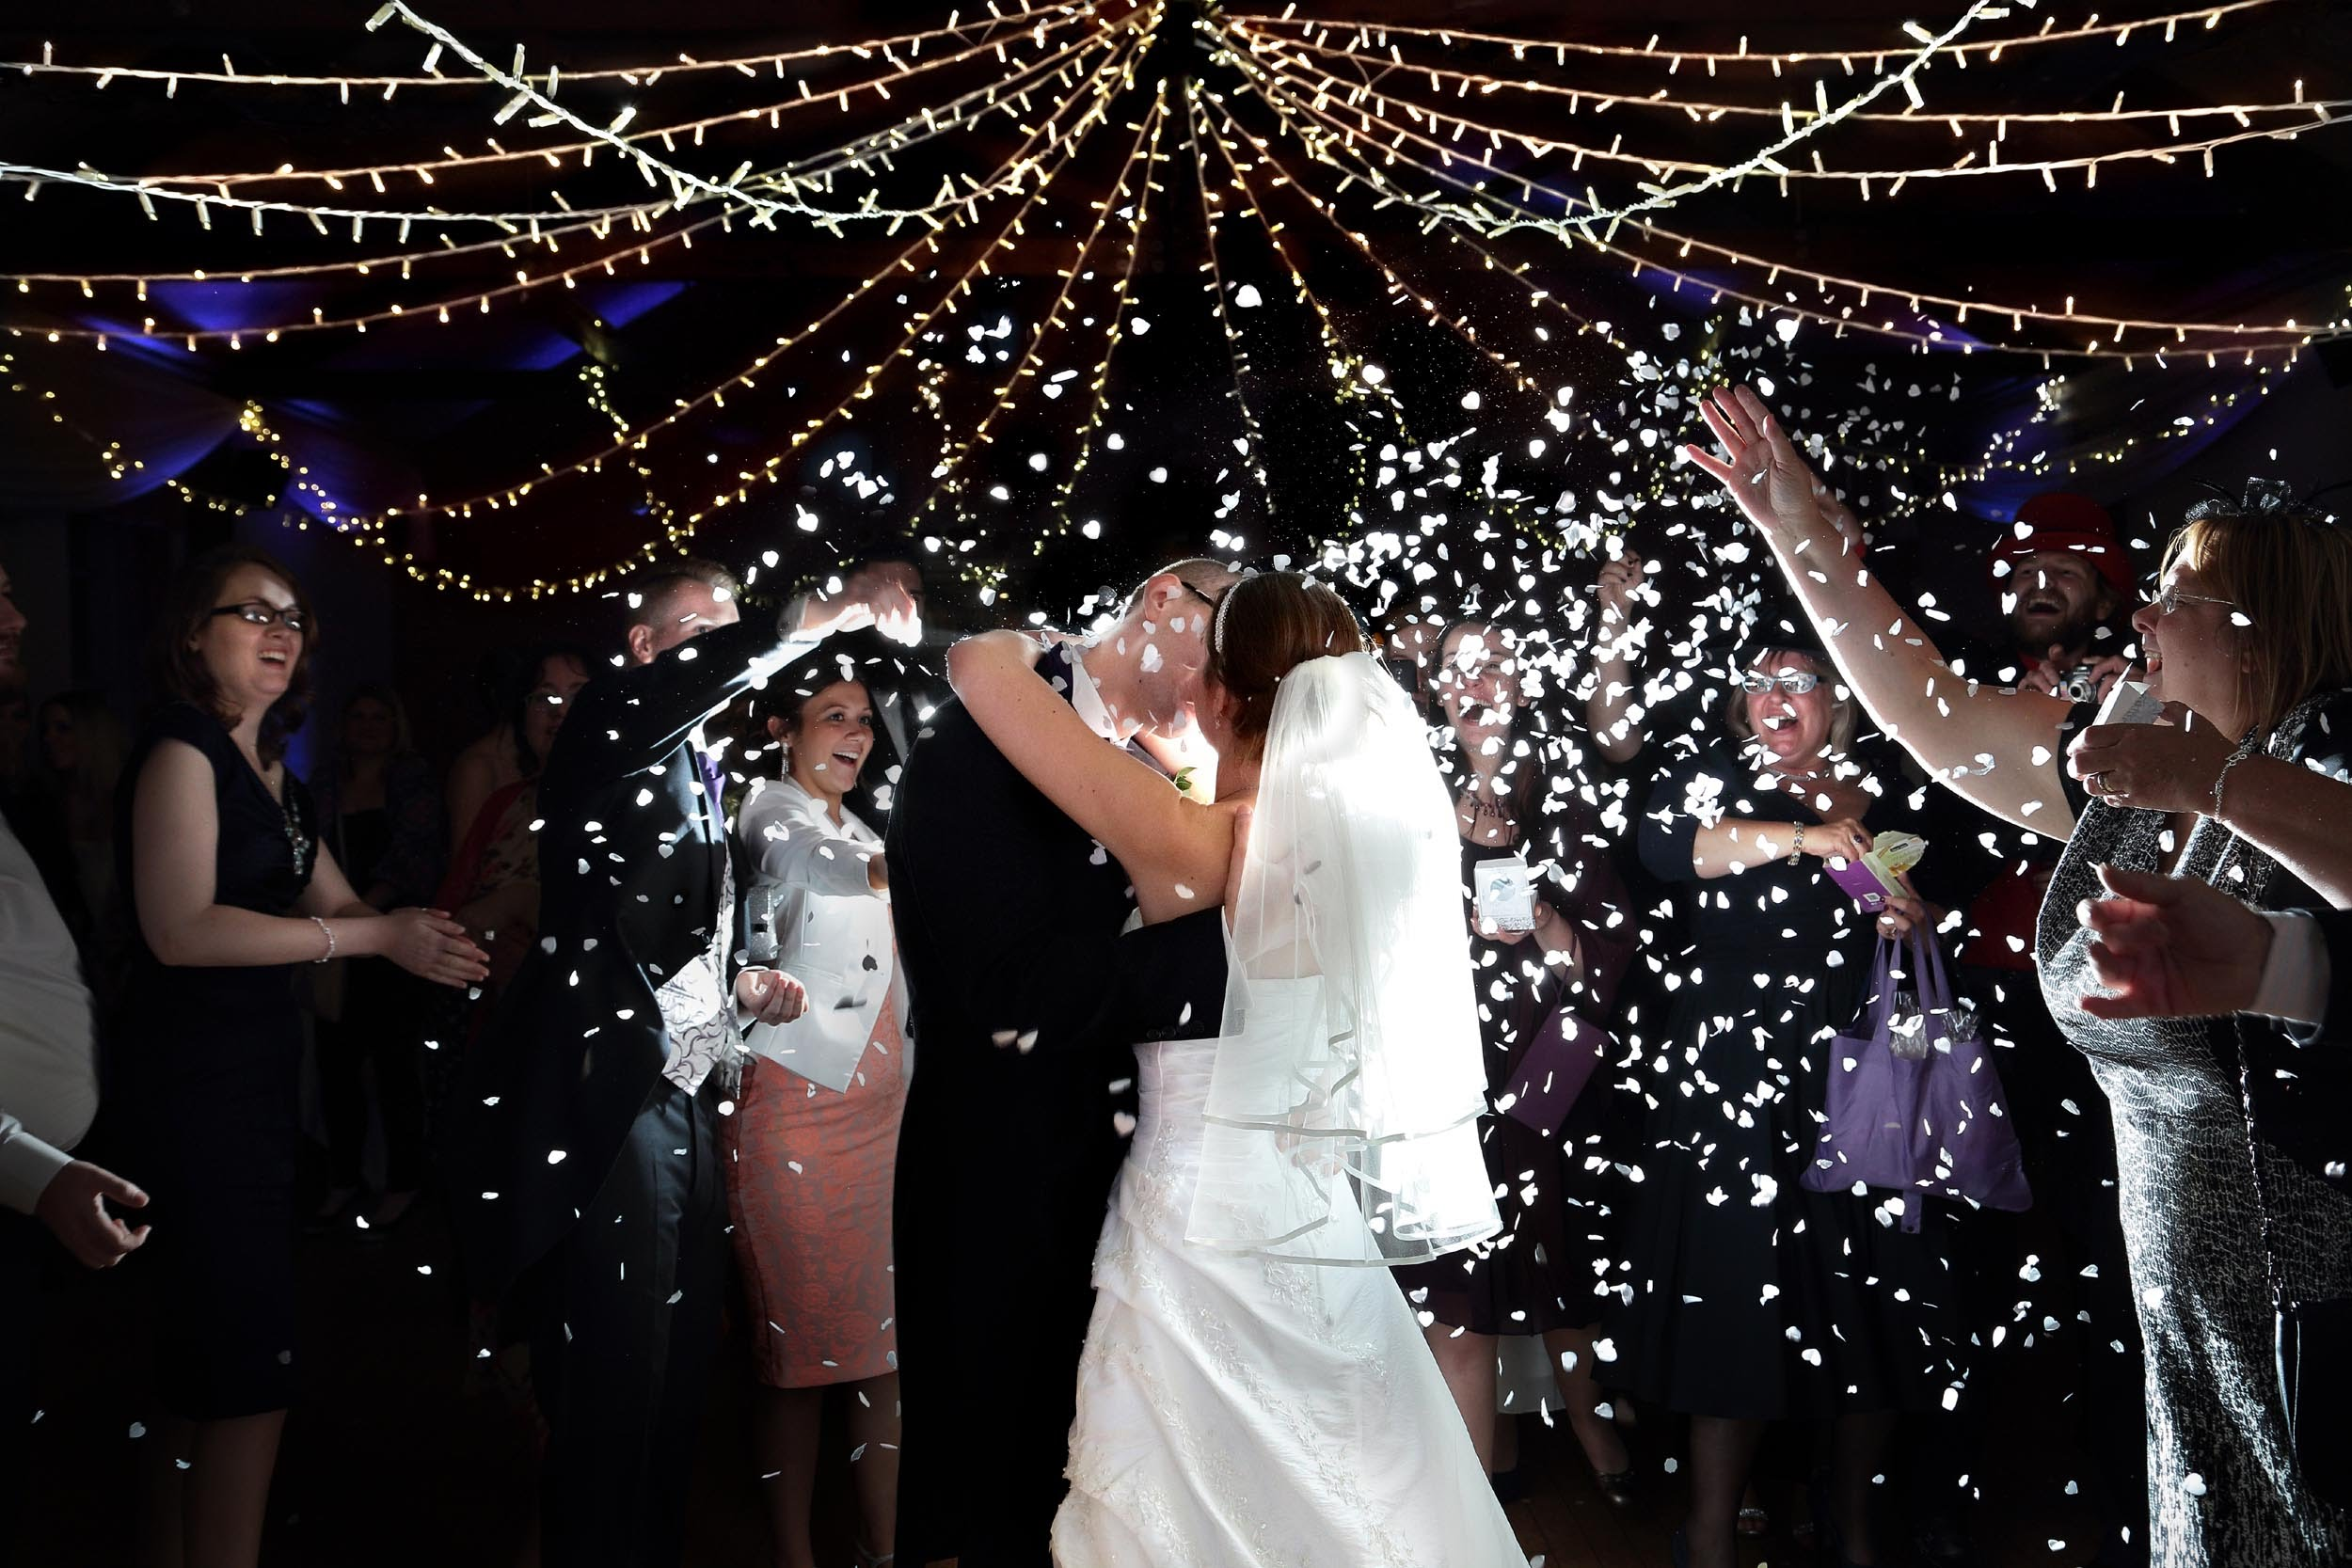 Village hall wedding decor hire with fairy light canopy